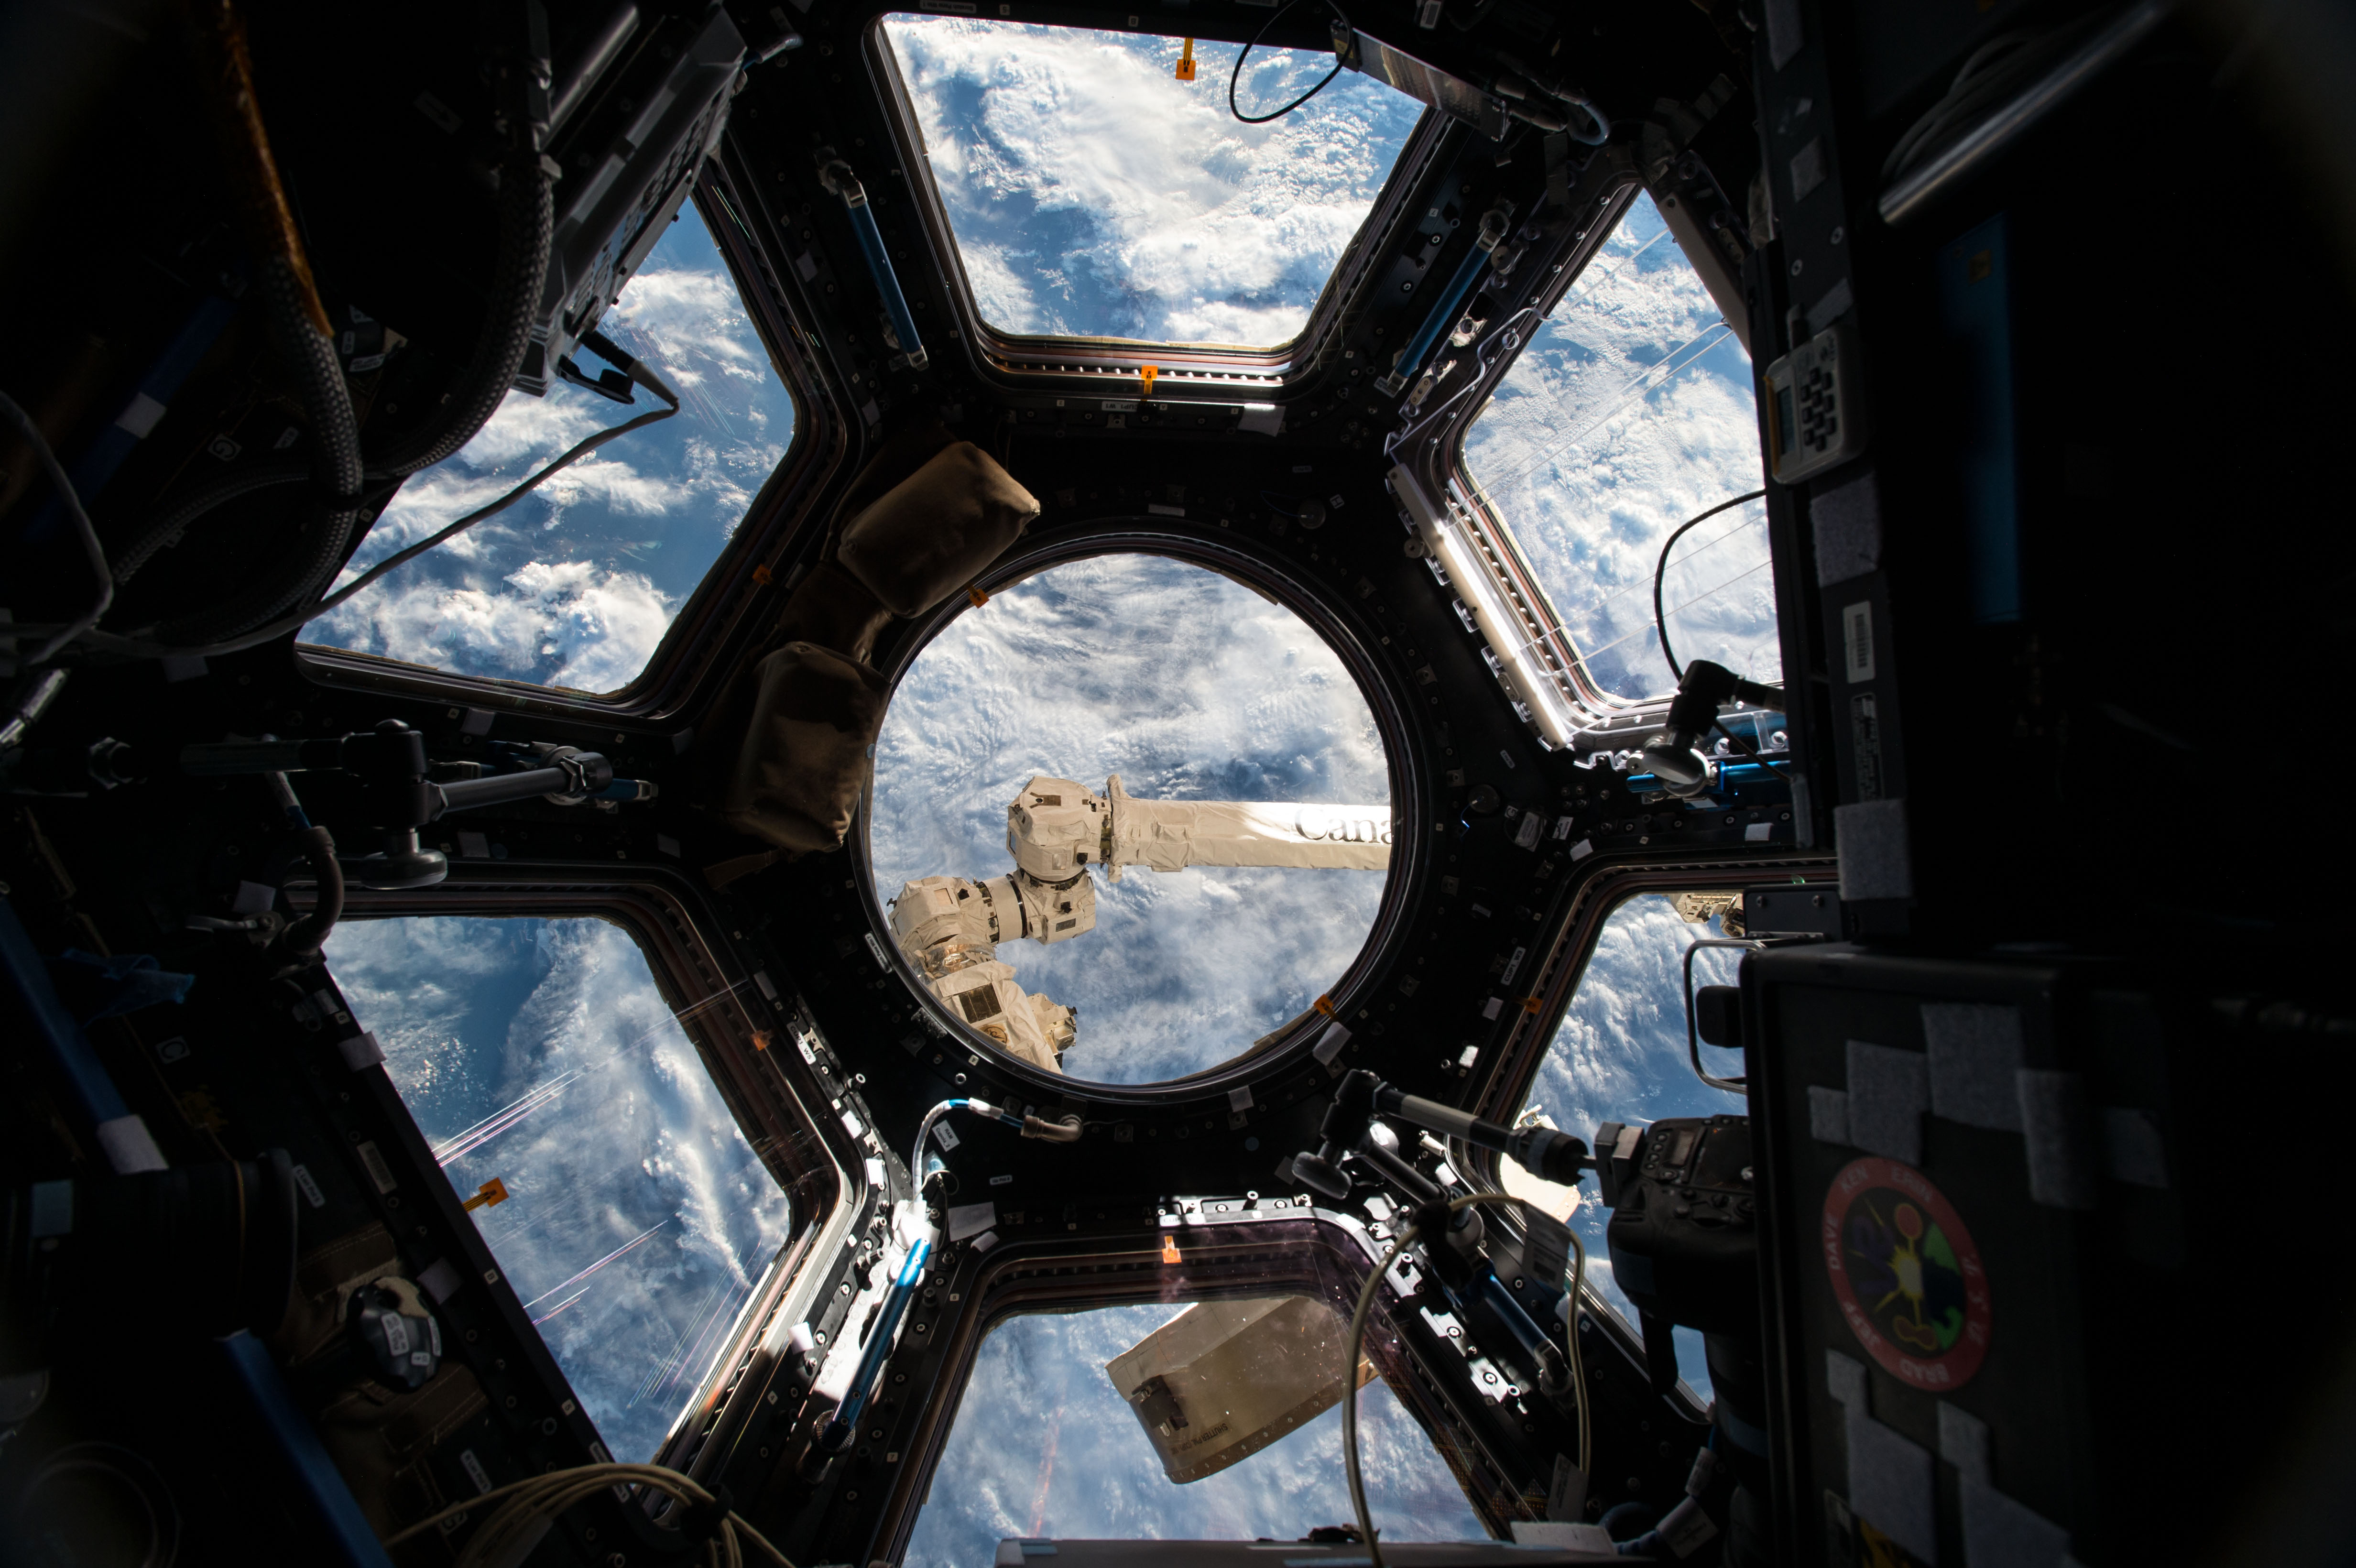 File:ISS-43 Cupola the 360 degree observation area.jpg ...